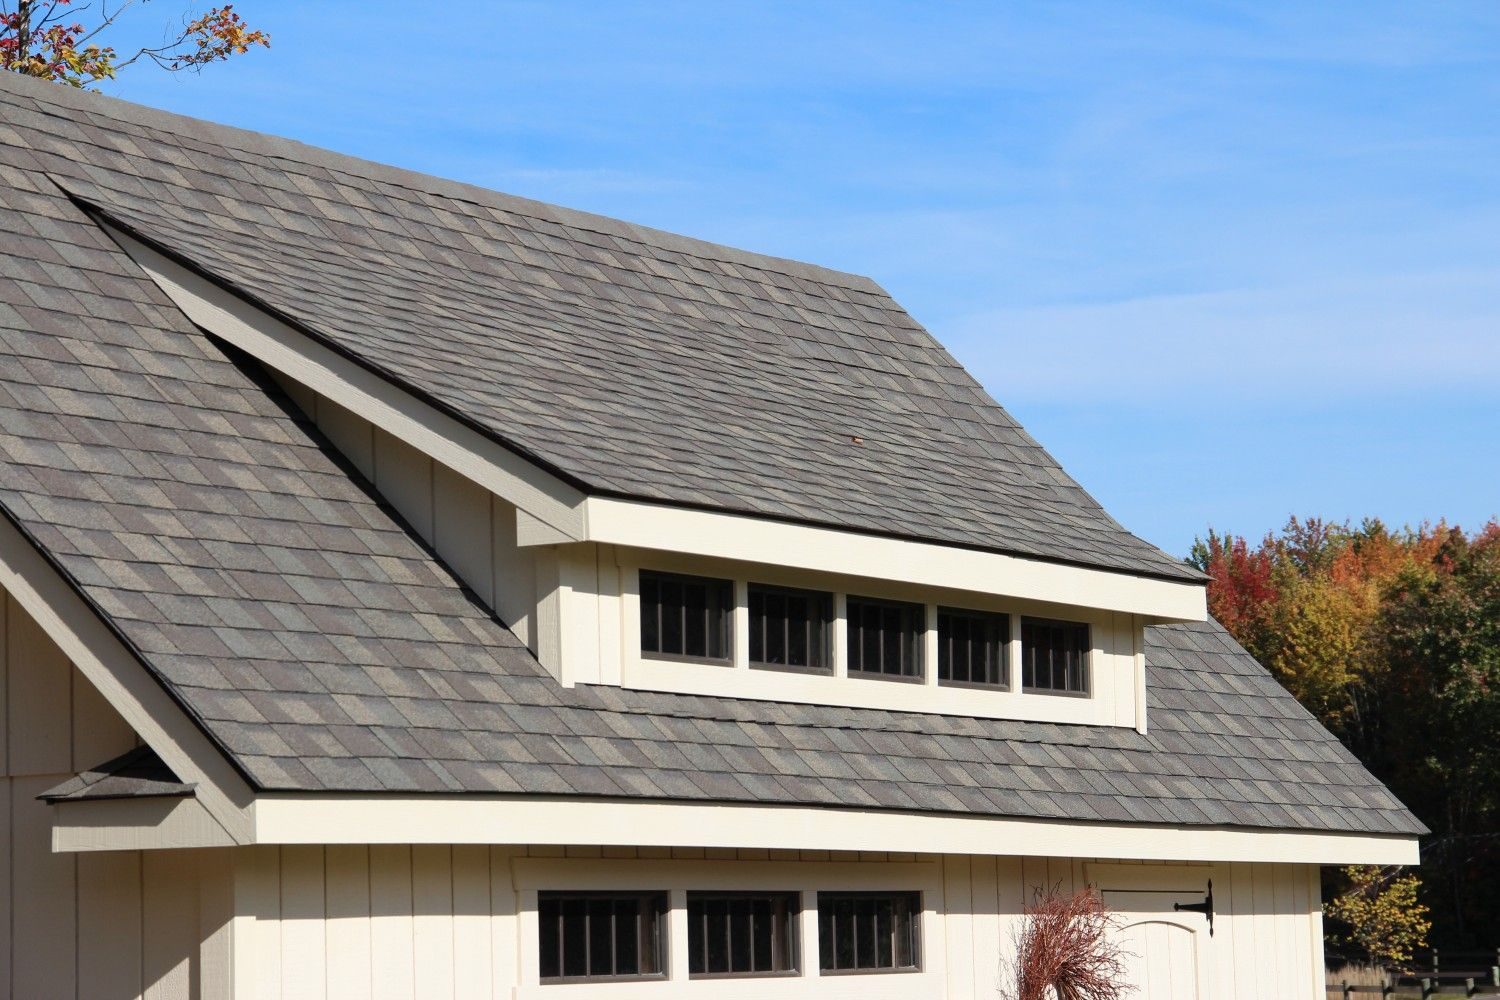 Gable- gable dormers have a gabled roof with two sloping planes that meet  at a central ridge. | Roofs, Dormers, Windows | Pinterest | Window design,  Window ...